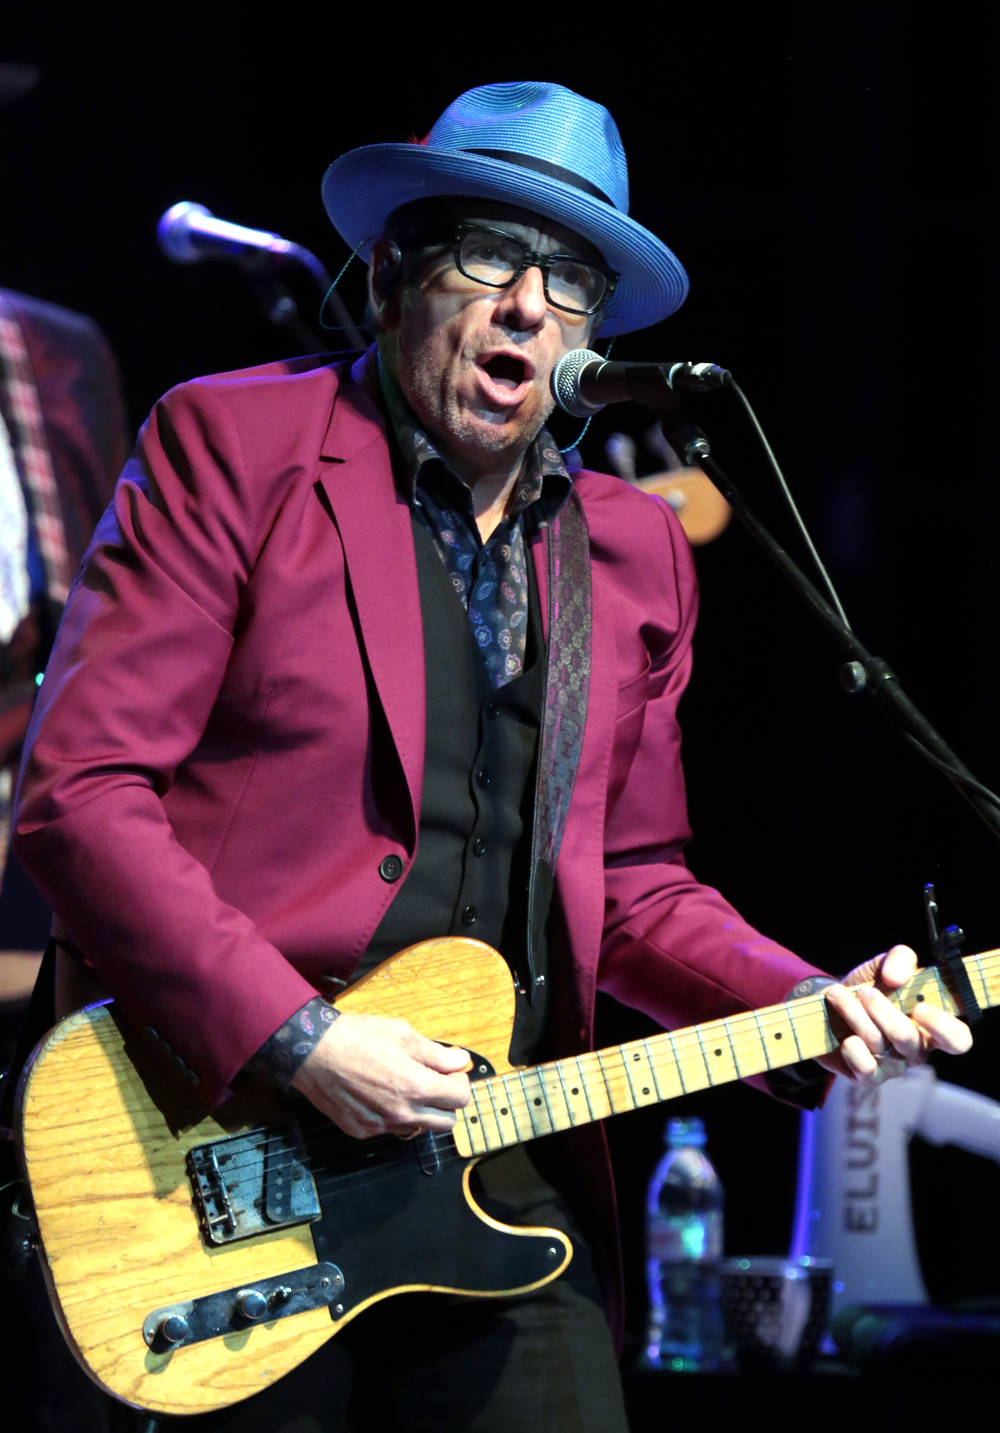 COURTESY // Will Bucquoy   Elvis Costello and the Imposters played a two and a half hour show at Weill Hall on Wednesday.